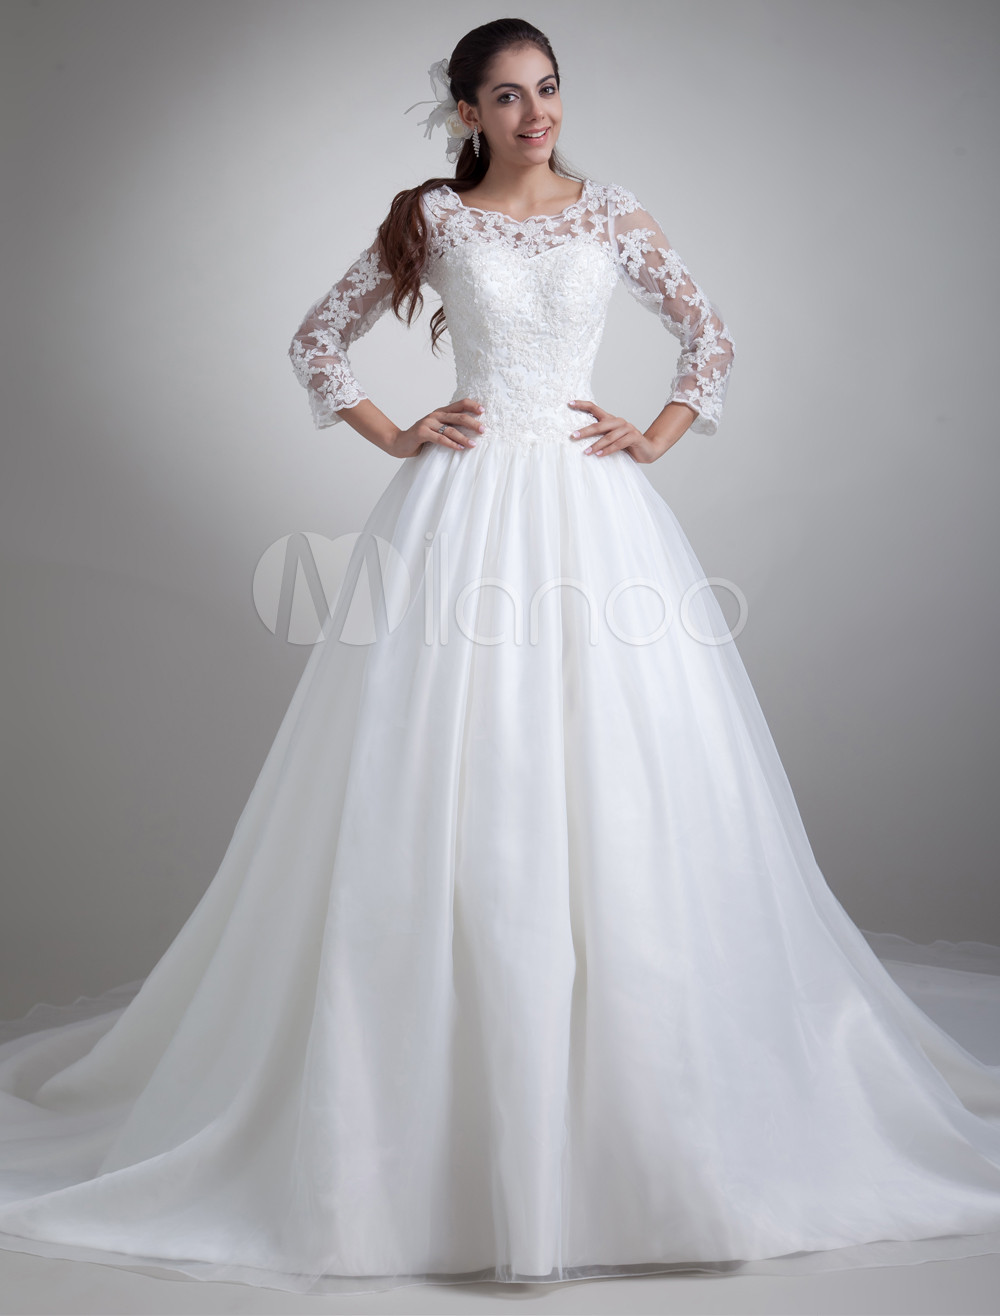 Beautiful White Jewel Neck Wedding Dress For Bride